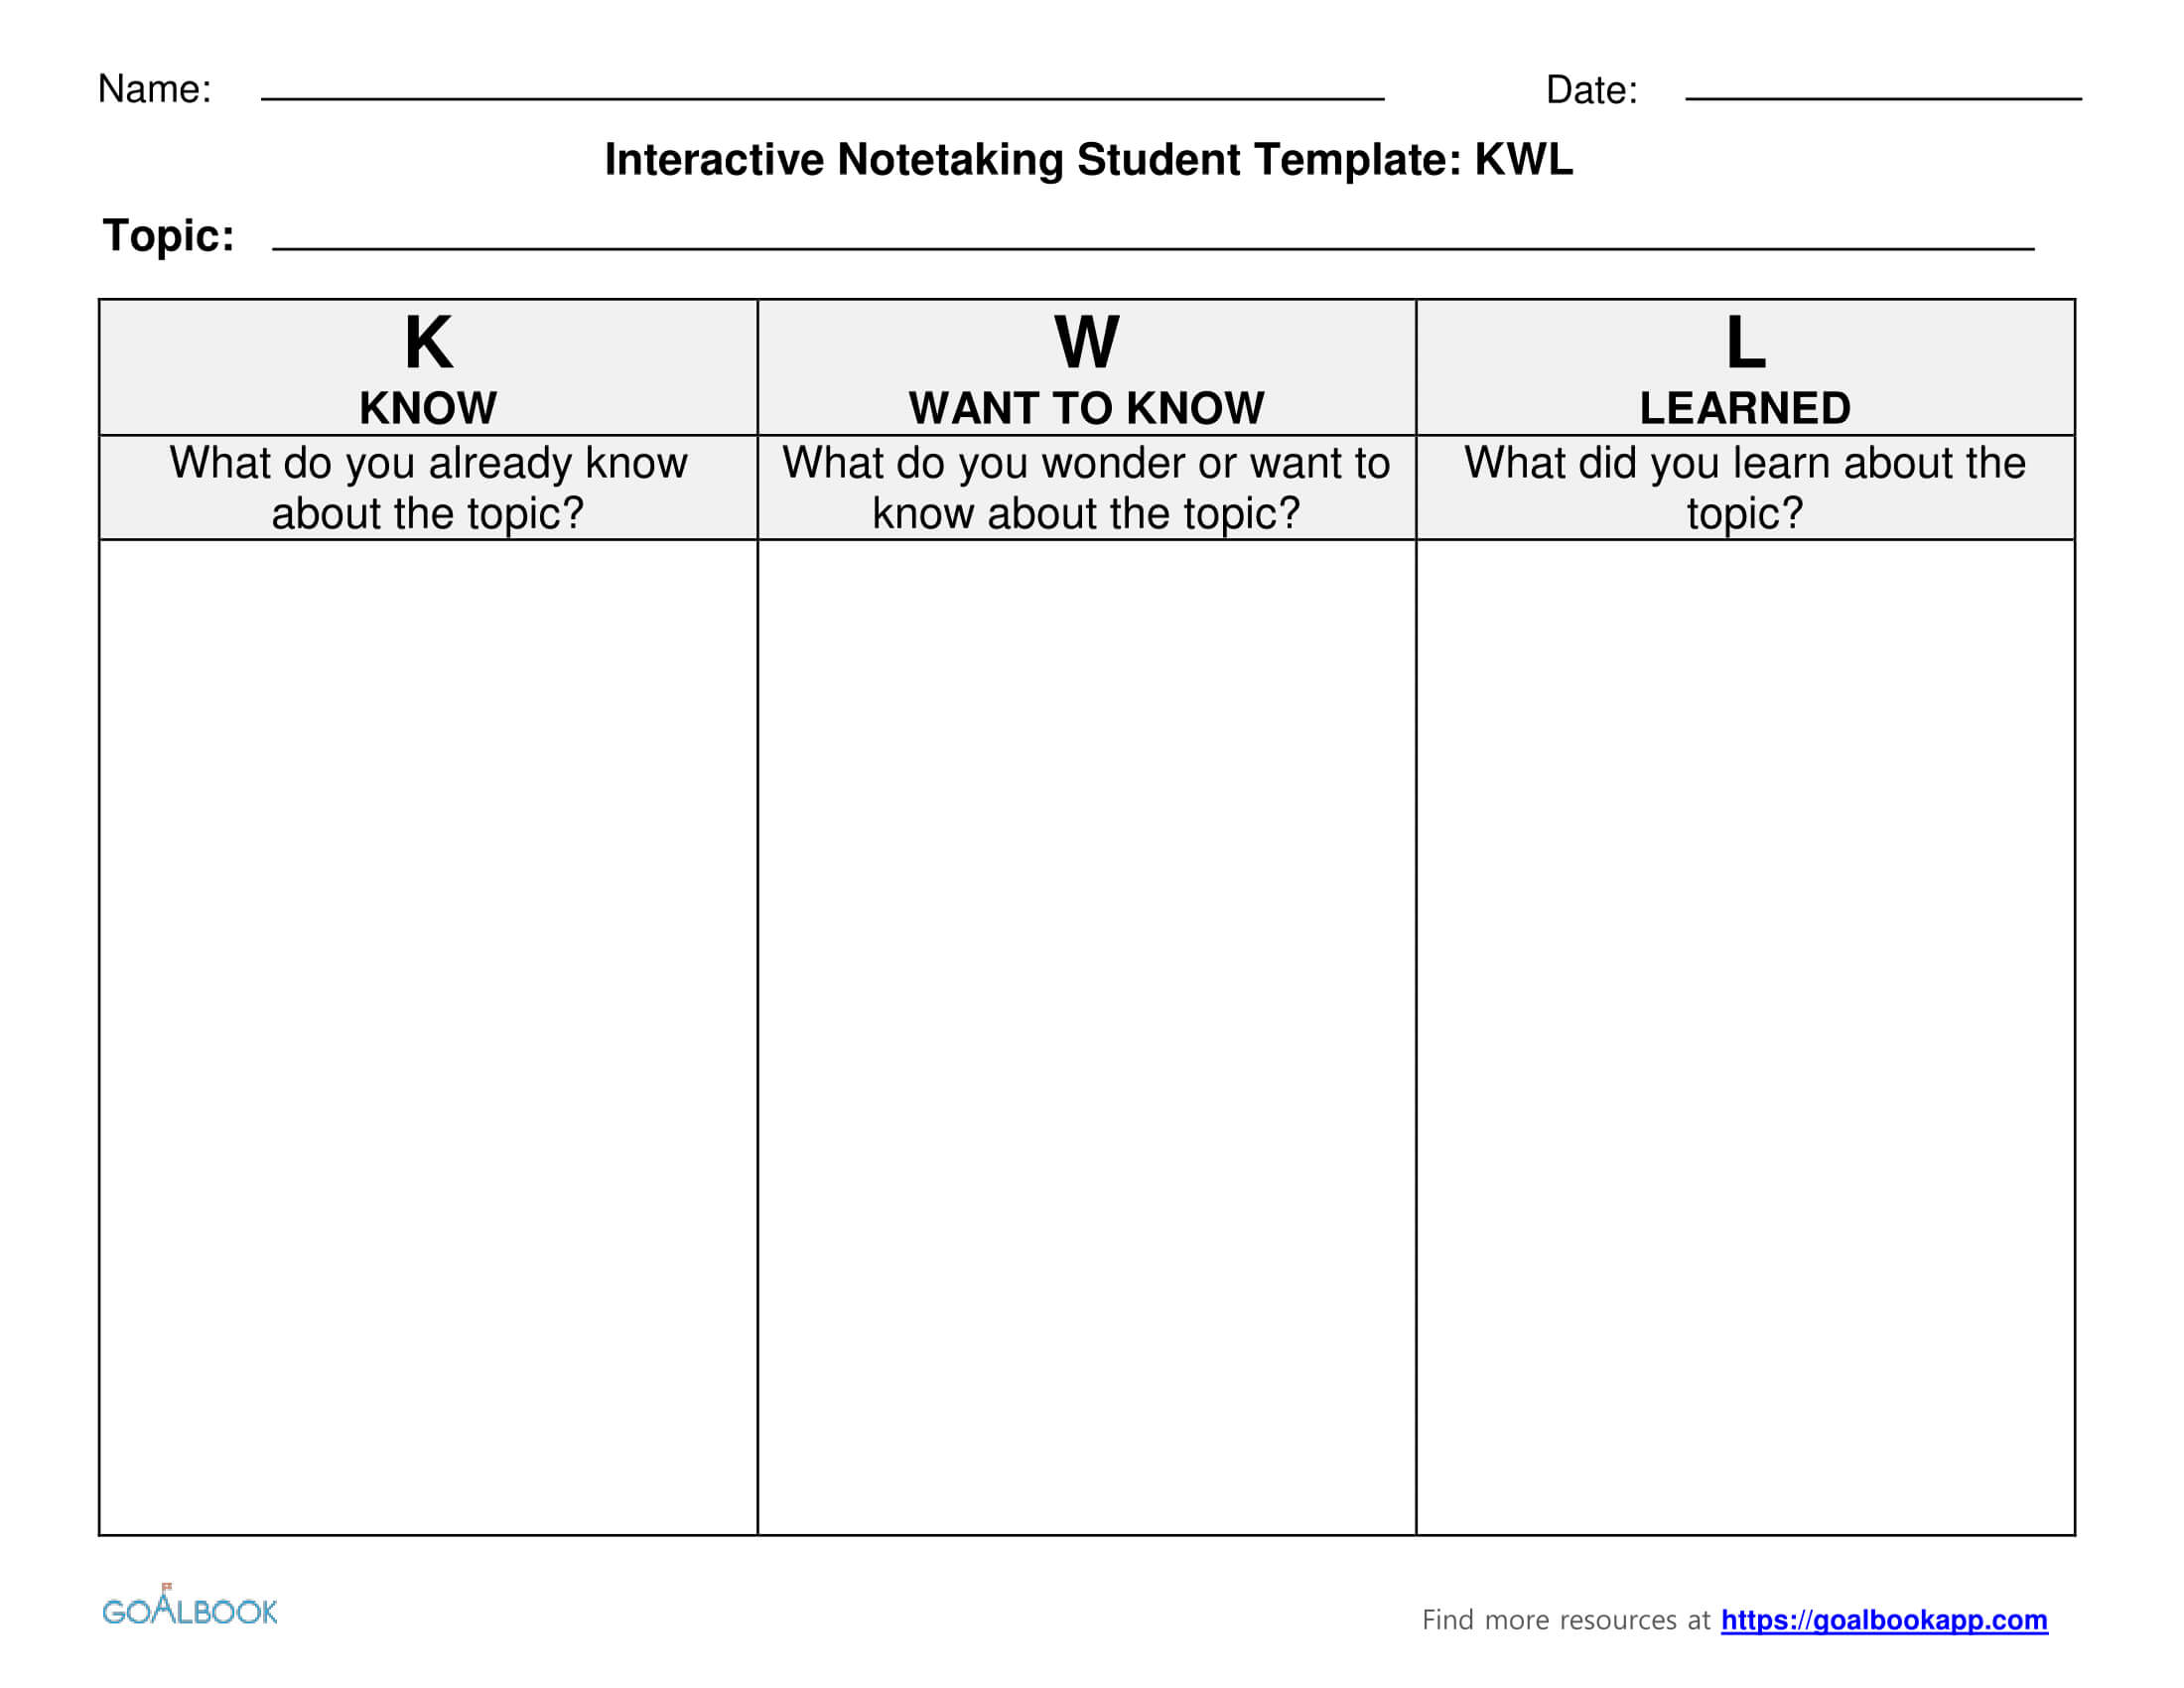 Kwl Charts For Interactive Notetaking | Instructional Design Inside Kwl Chart Template Word Document